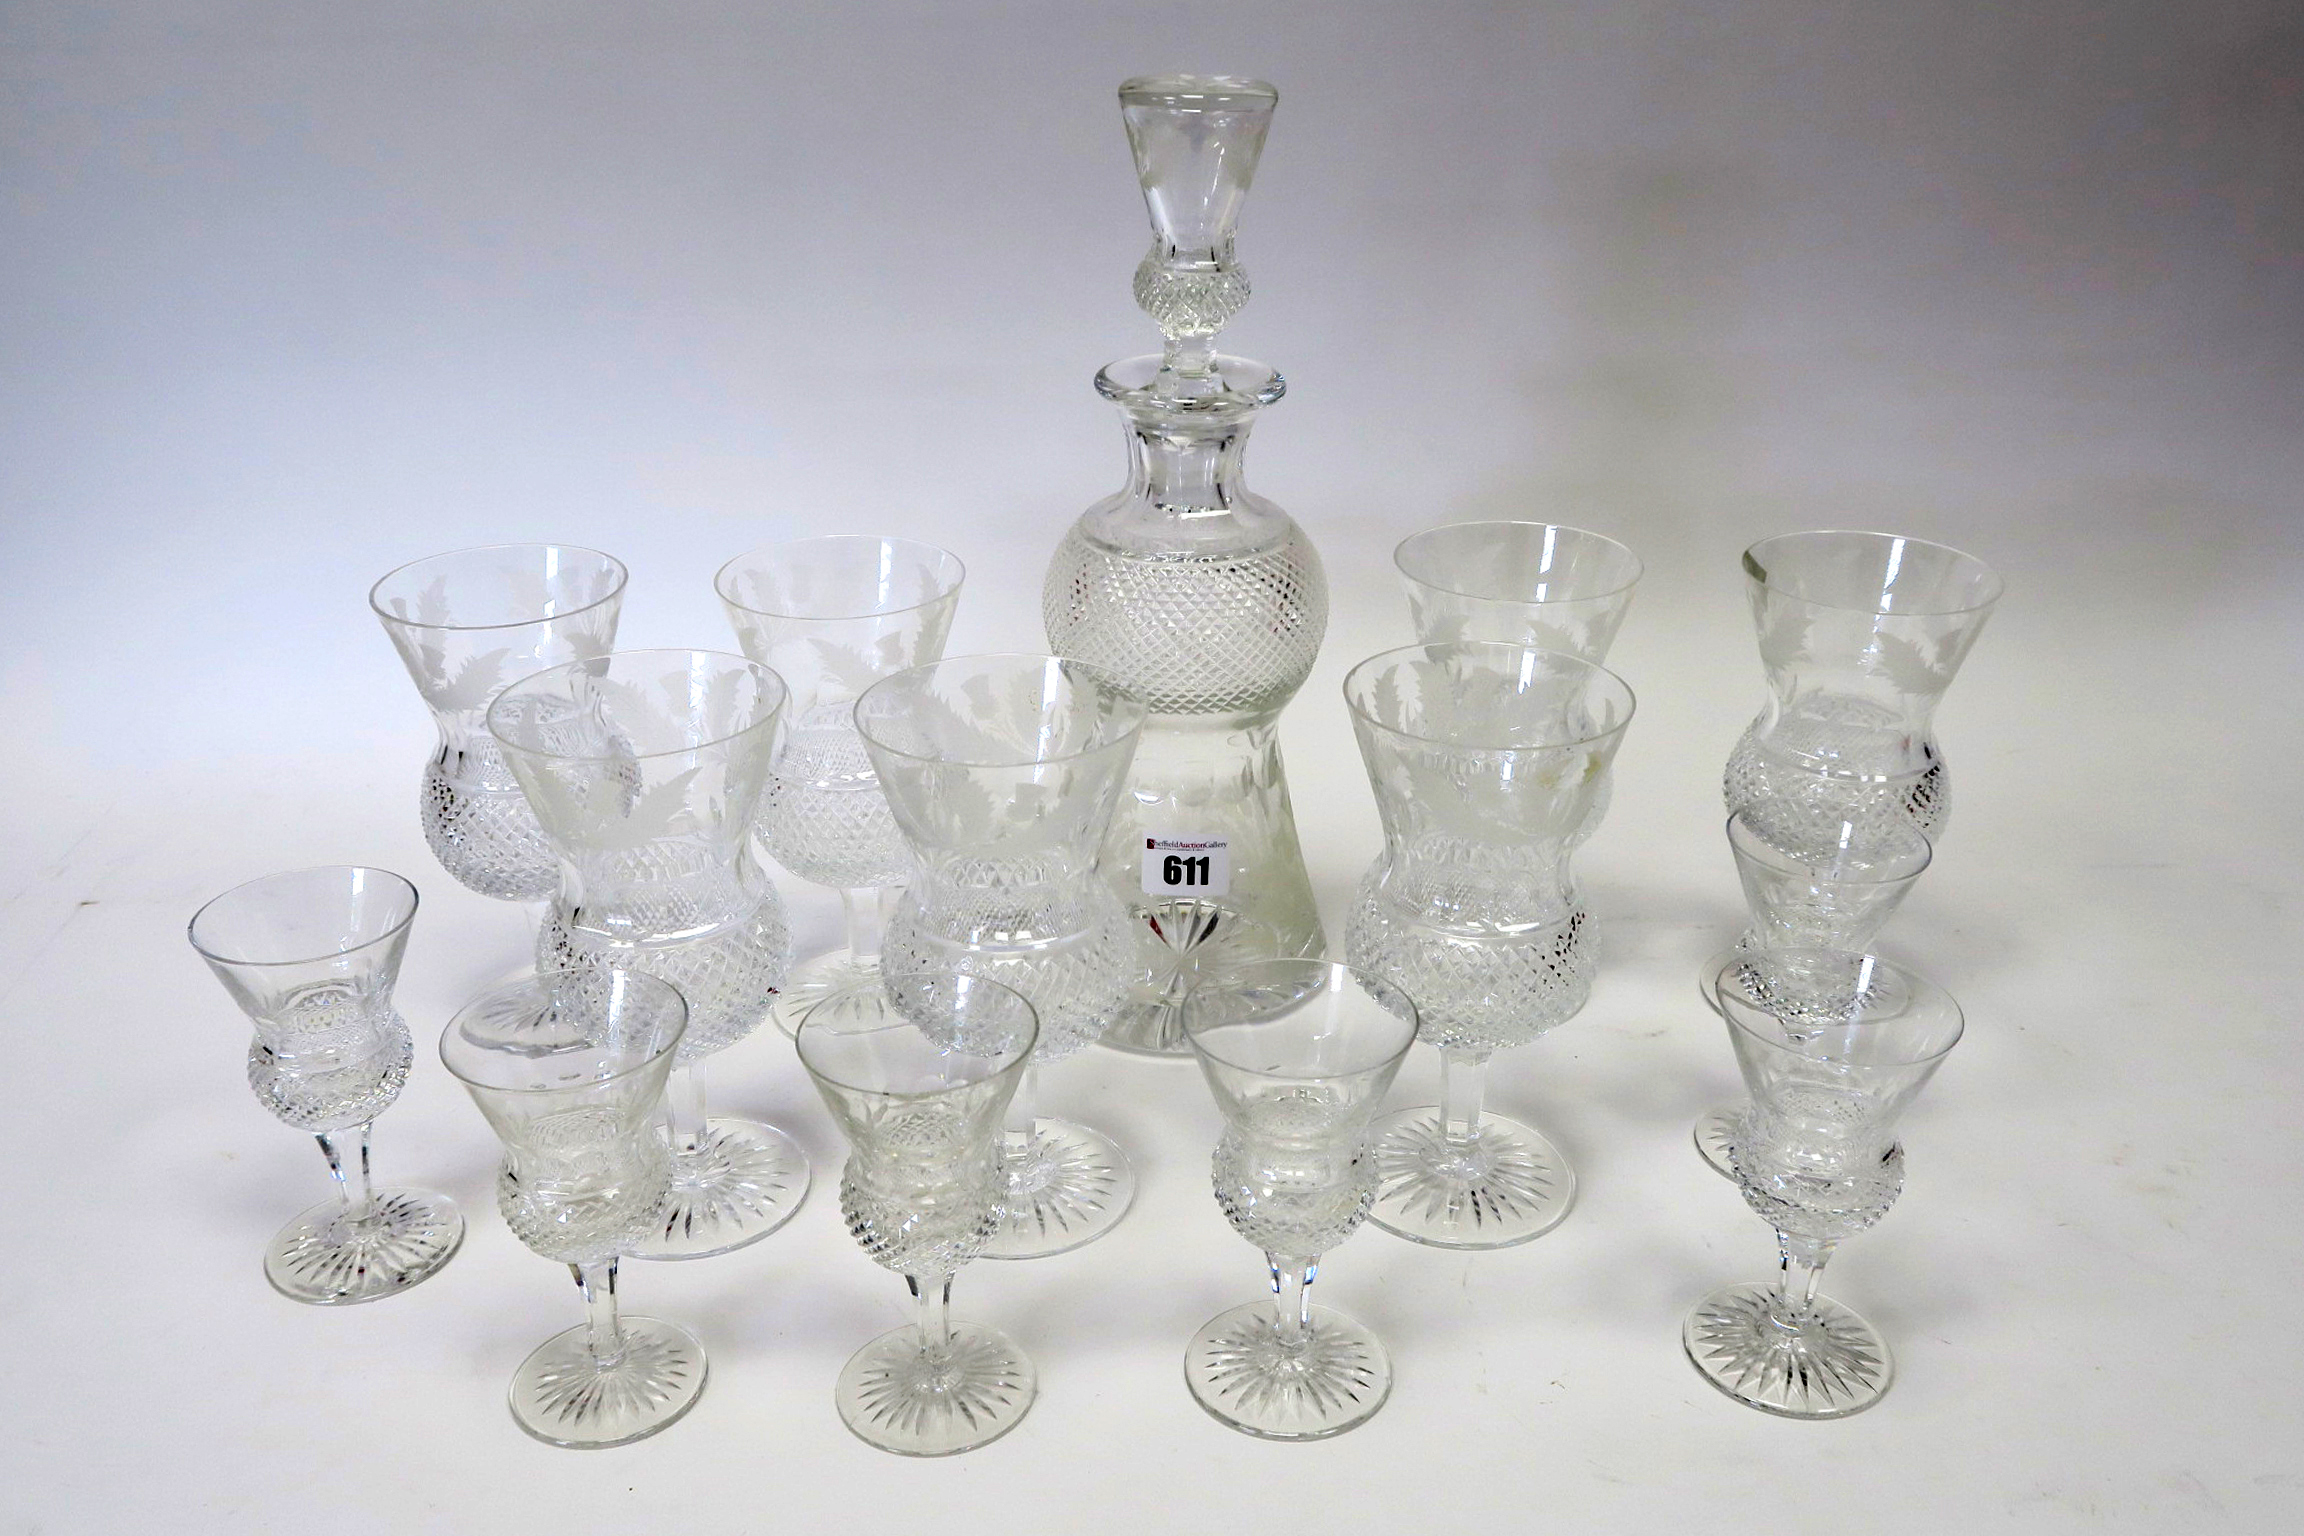 Lot 611 - An Edinburgh Crystal Part Suite of 'Thistle' Pattern Glassware, each piece etched with thistles